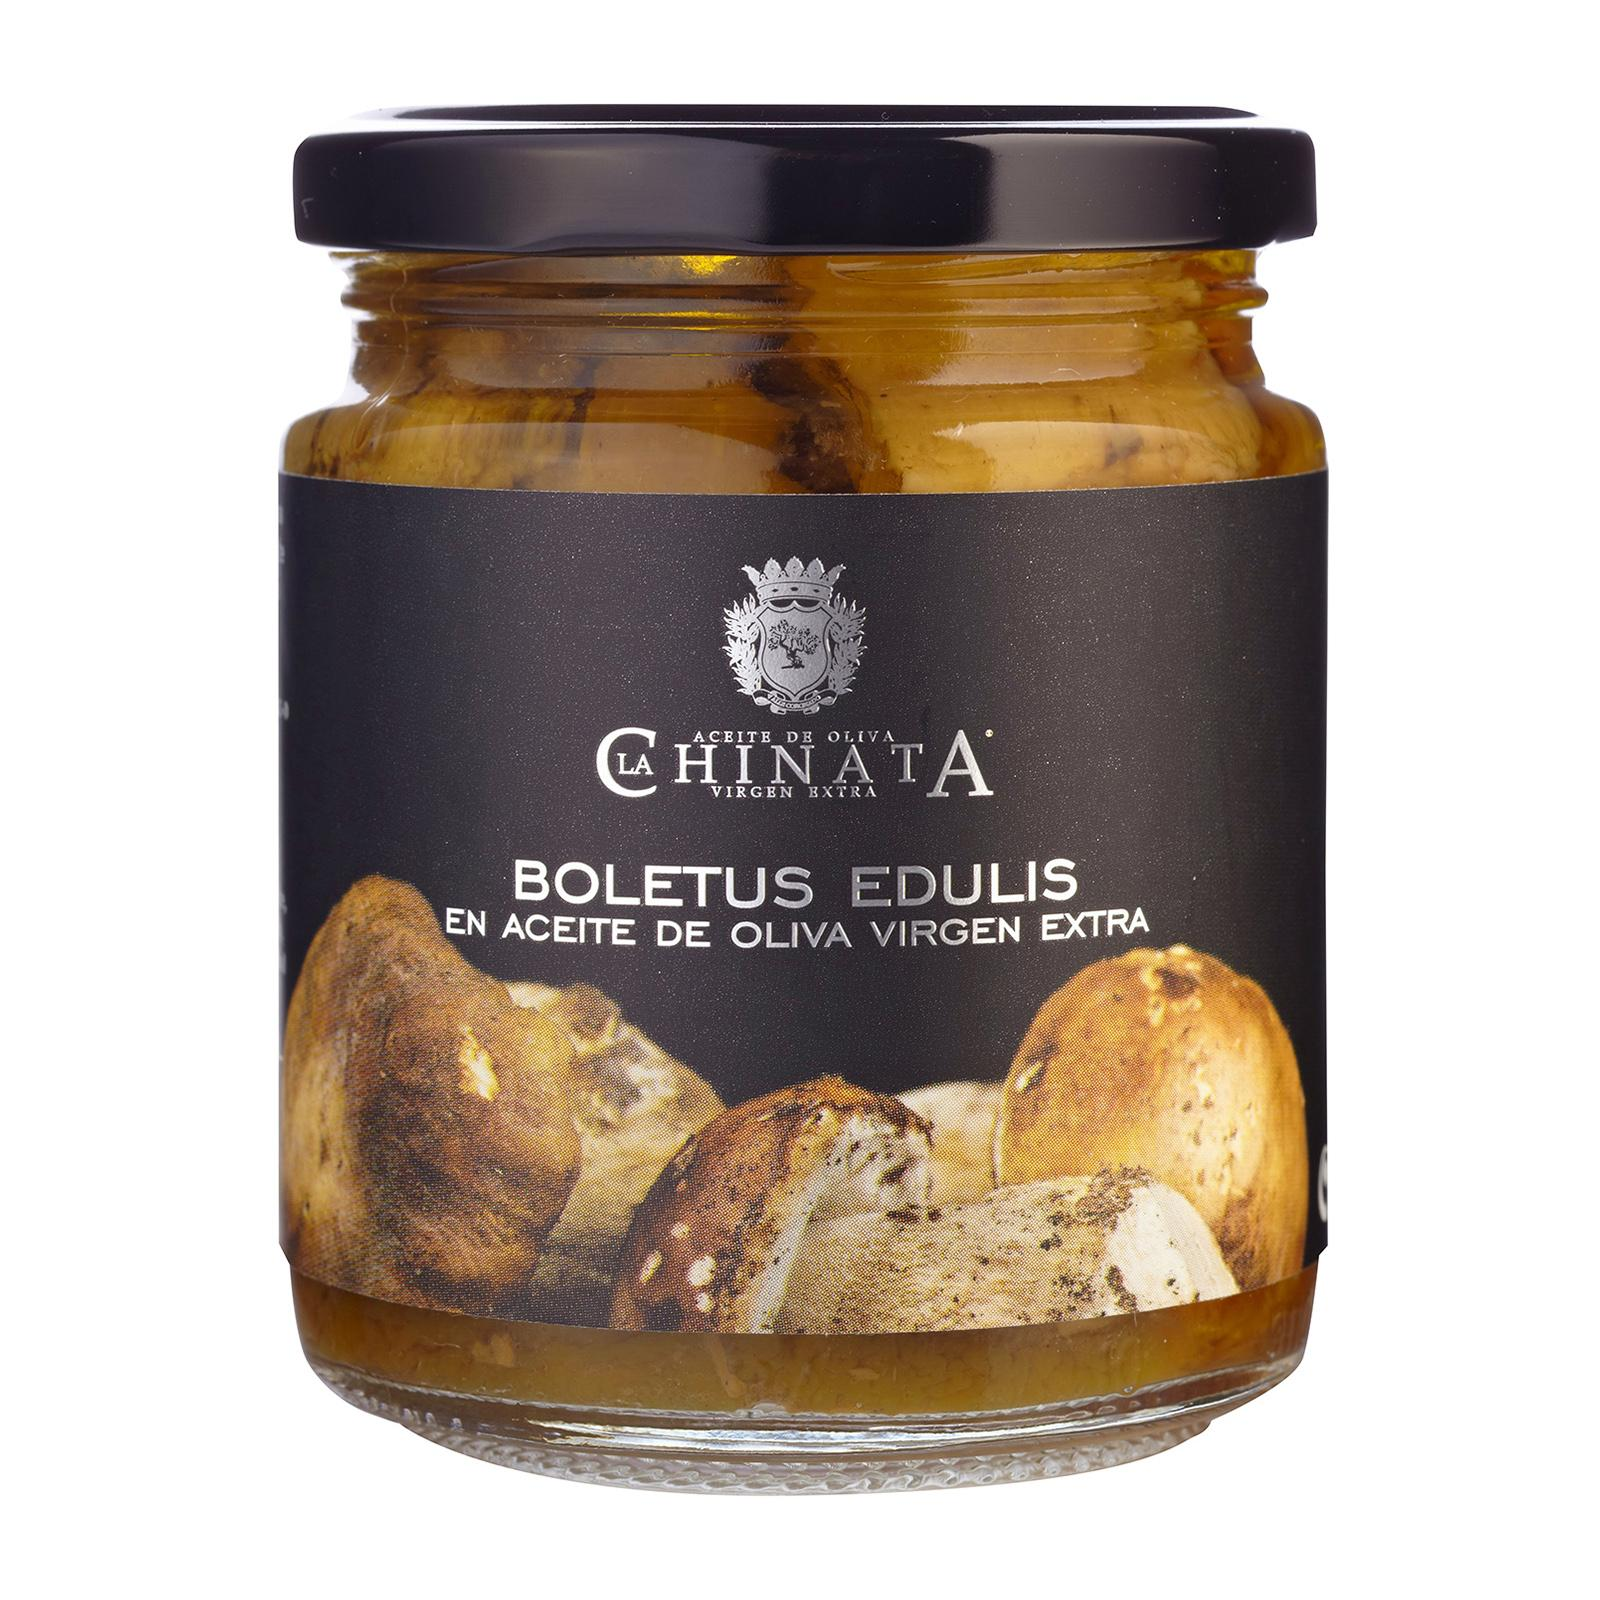 La Chinata Funghi Porcini Mushrooms in Extra Virgin Olive Oil - By TANINOS